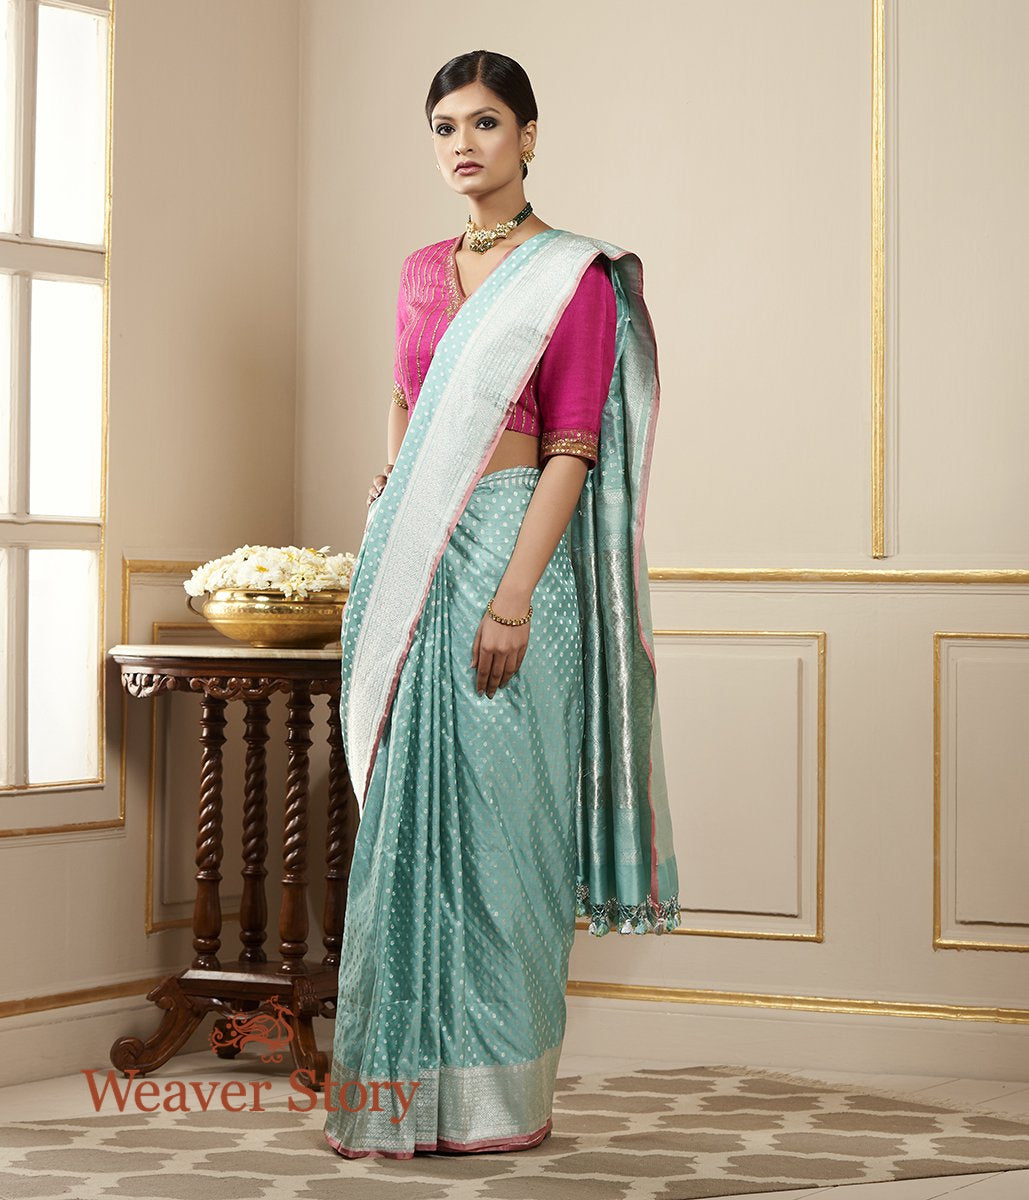 Handwoven Light Blue Banarasi Saree with Silver Zari